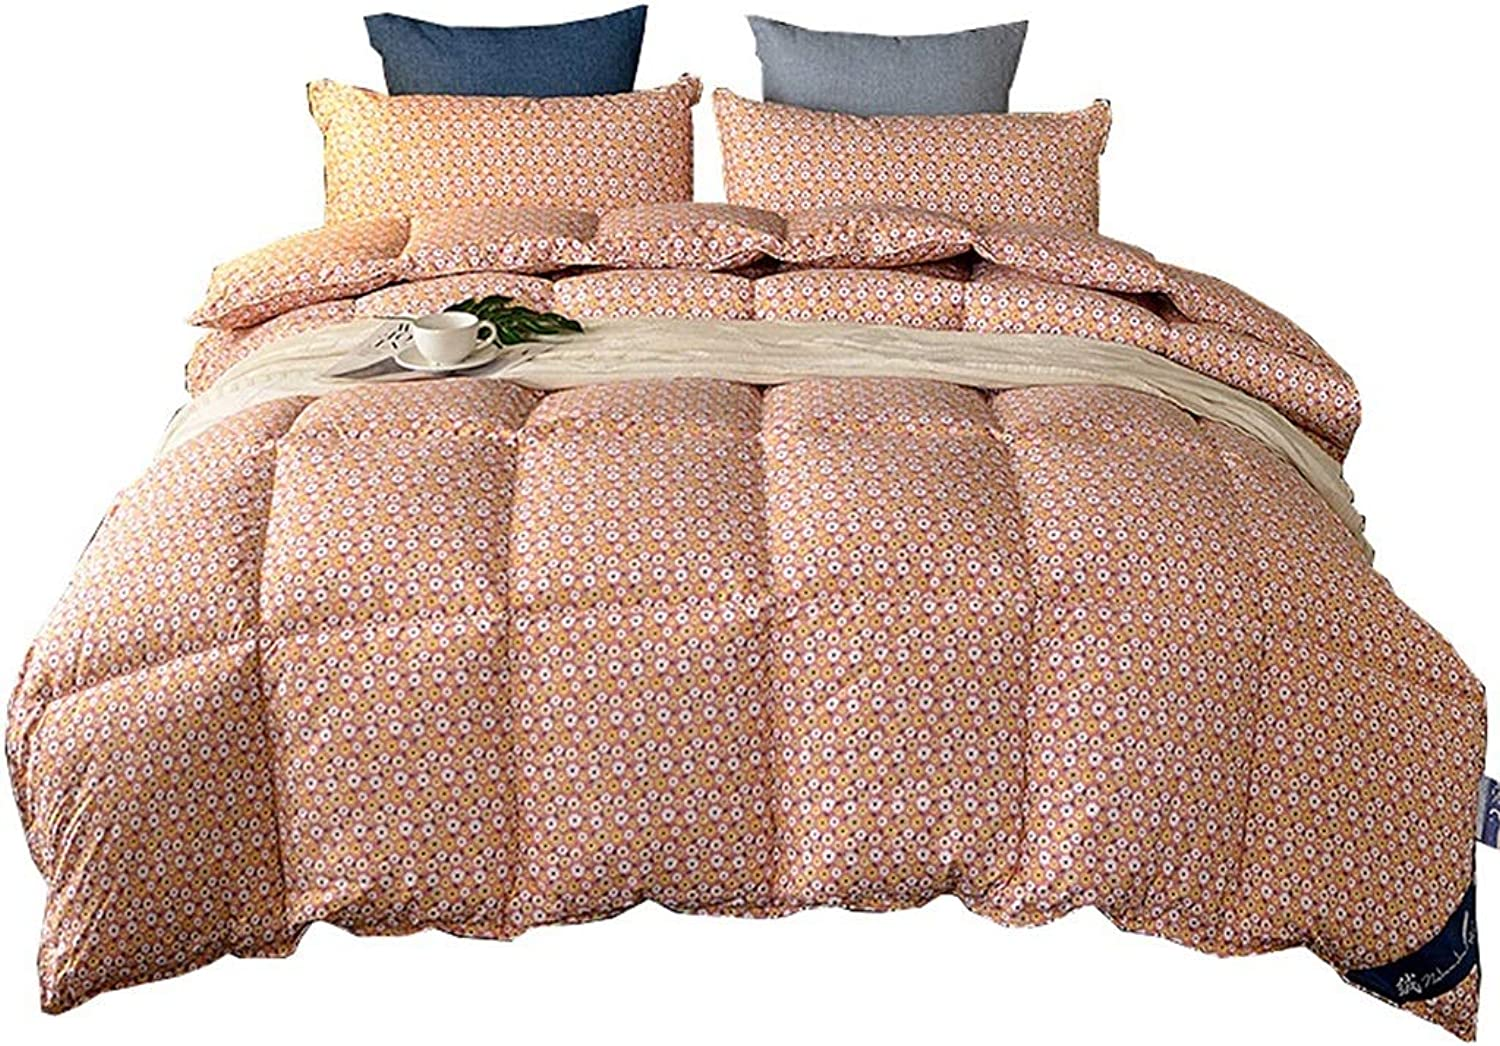 Quilted Comforter Corner Tabs Quilt 100% Cotton Fabrics Thicken Warm Soft All Season All-Season Quilted Comforte Rhypoallergenic (Size   200cmx230cm3kg)